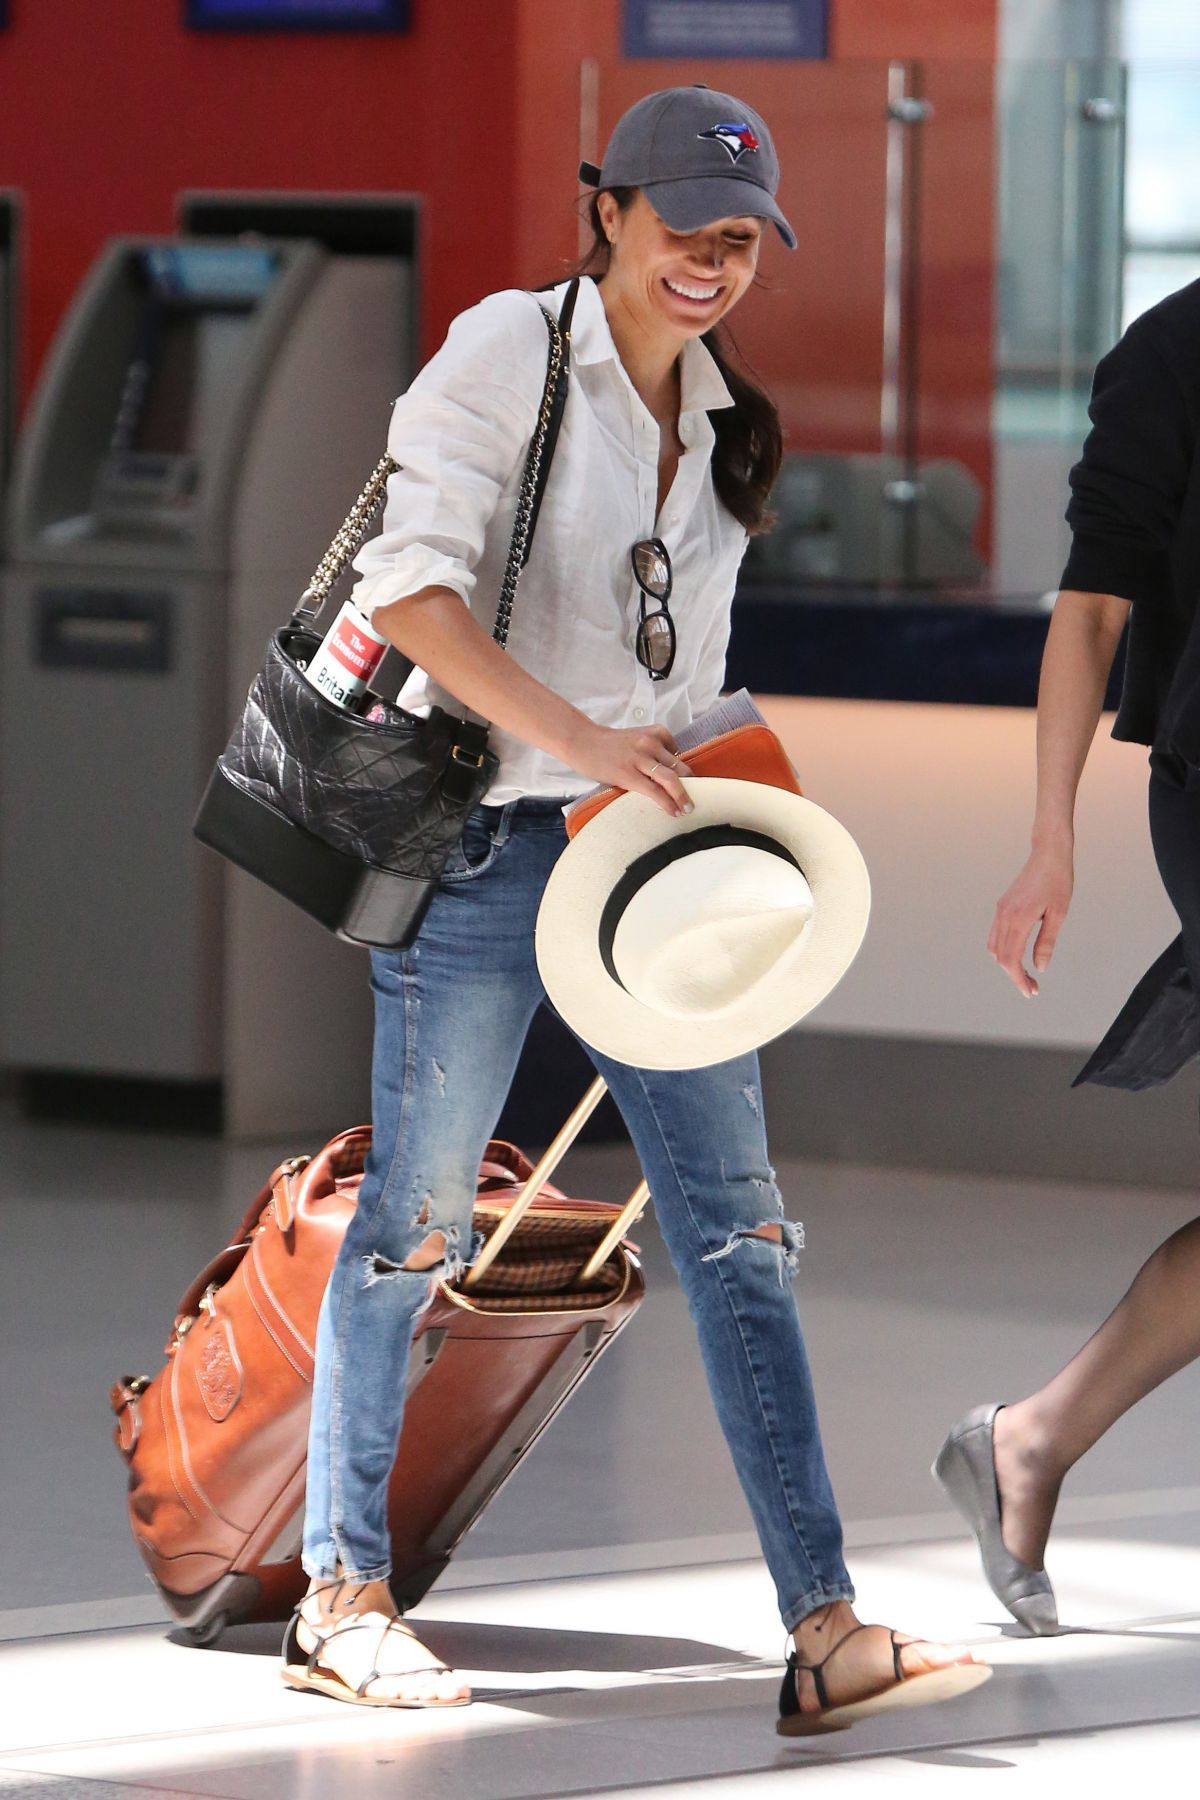 meghan-markle-arrives-at-airport-in-toronto-06-10-2017_4 ...